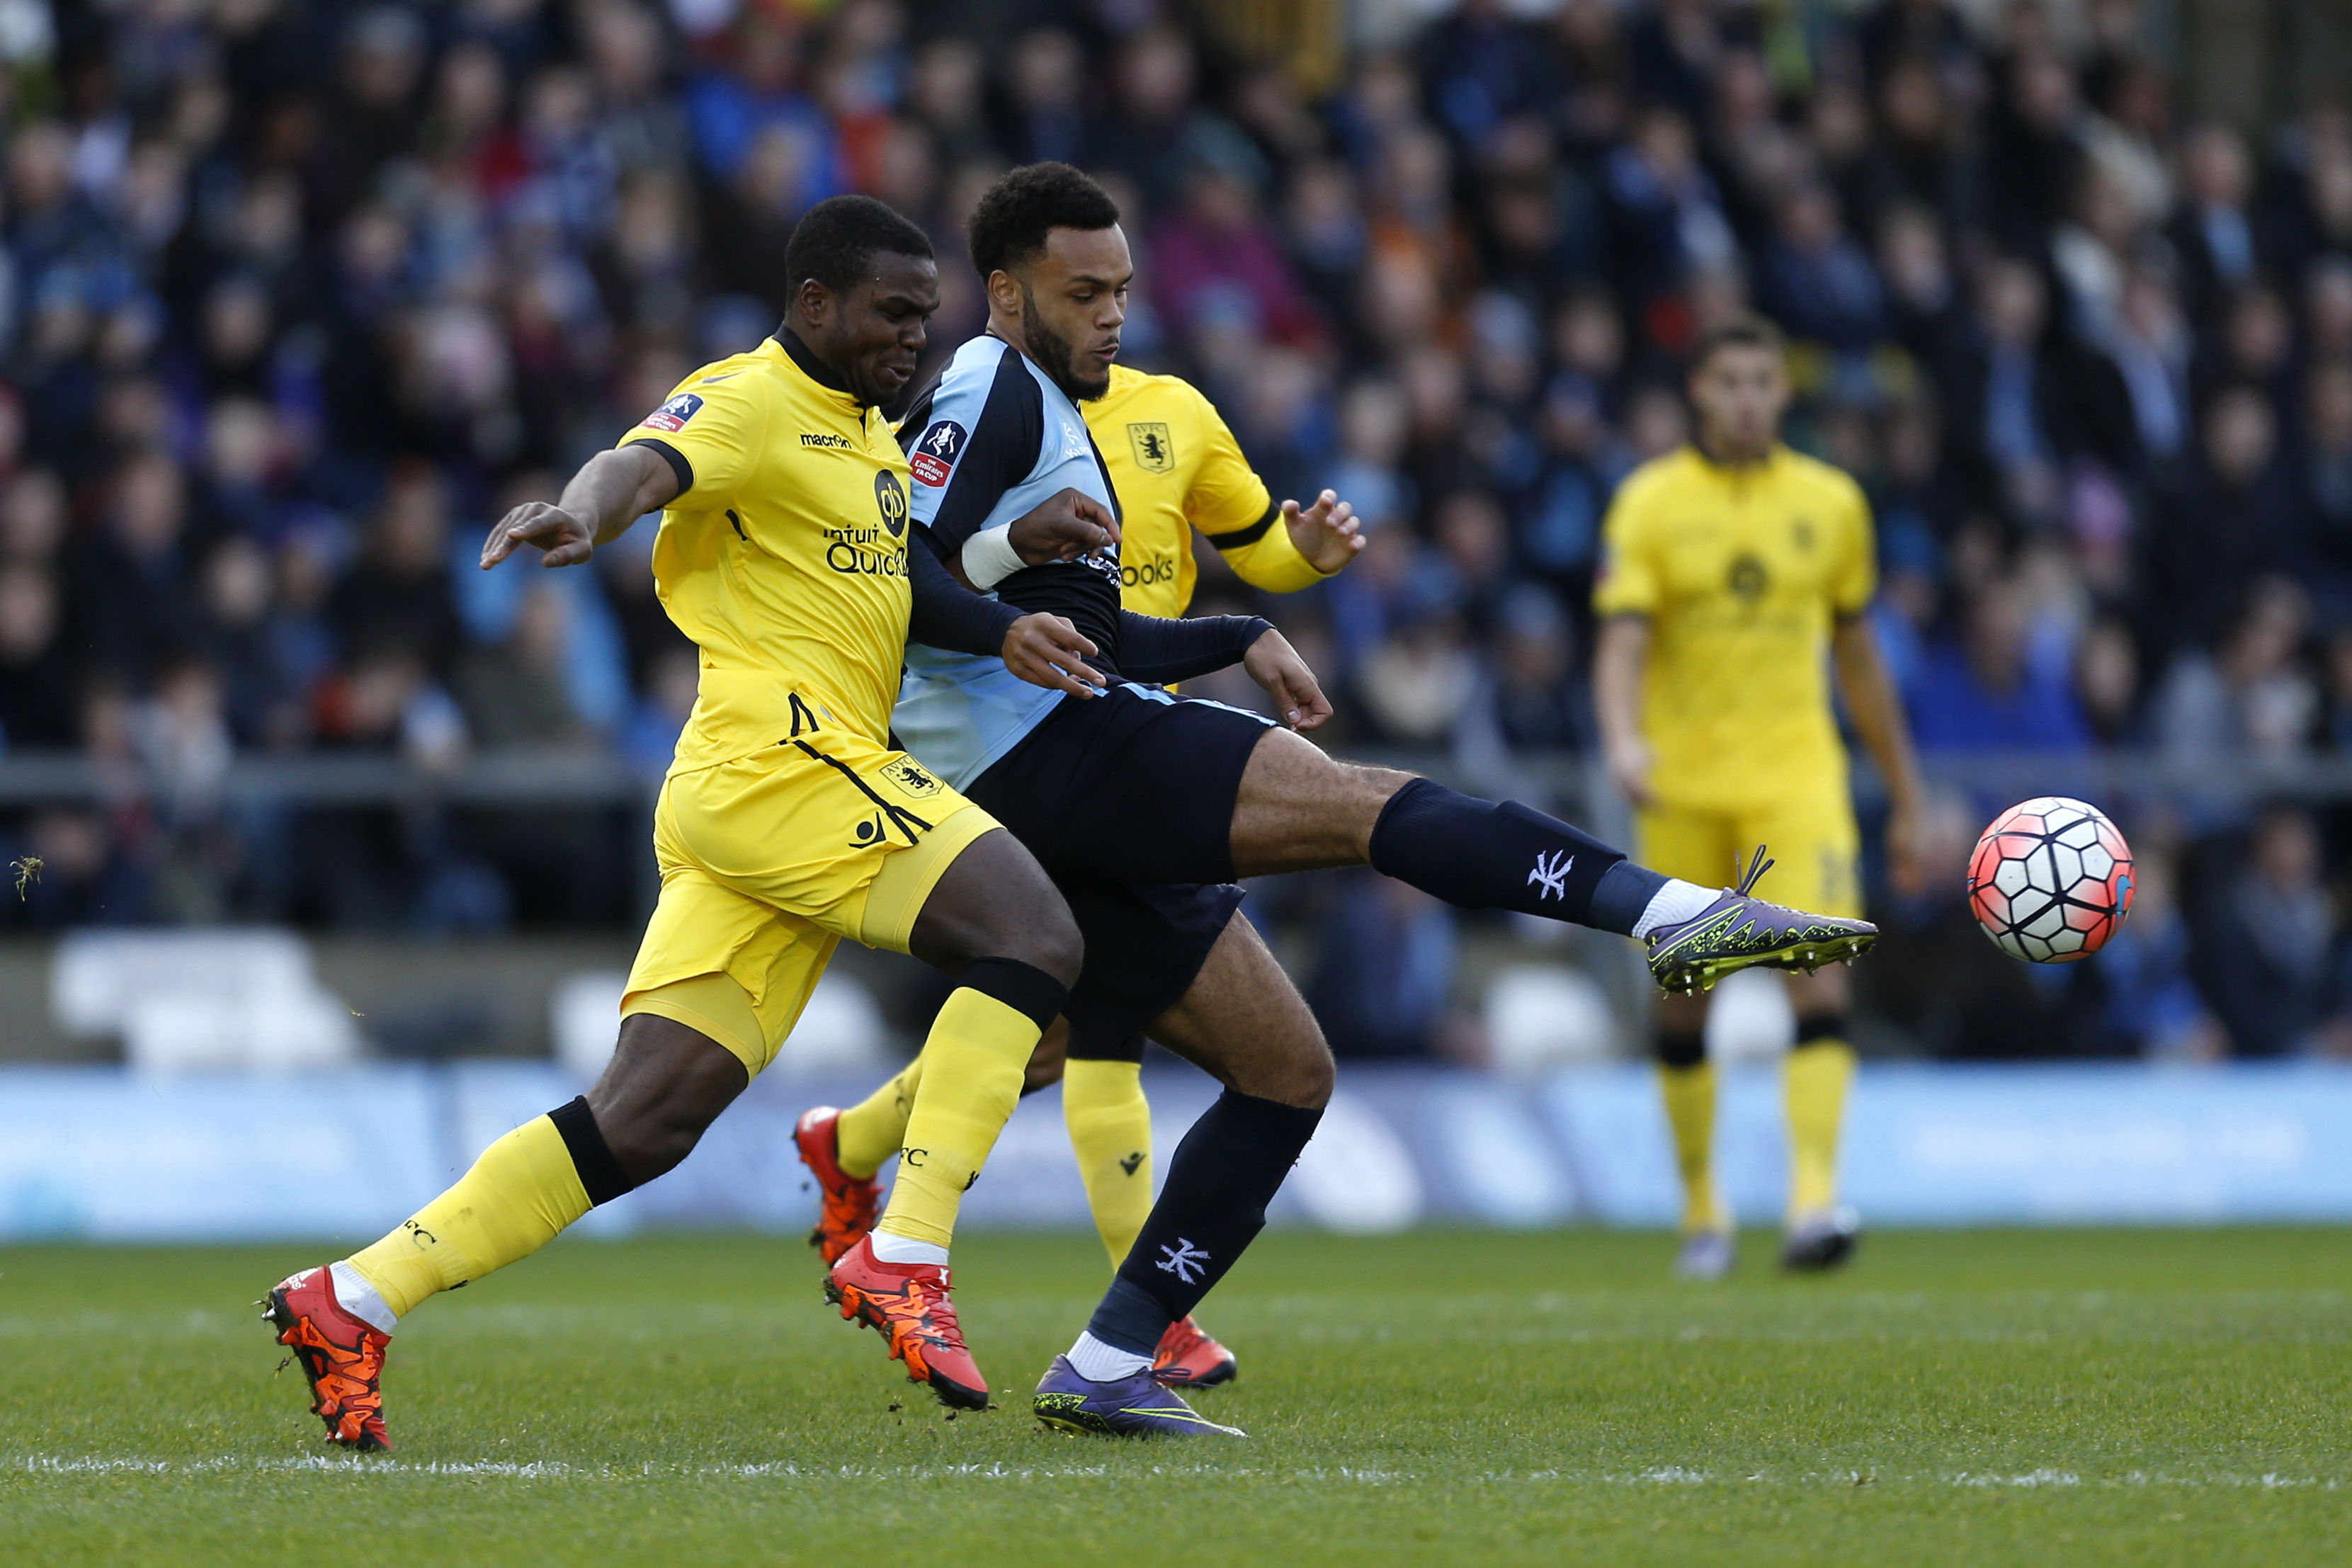 Wycombe Wanderers' Aaron Holloway, right, and Aston Villa's Jores Okore battle for the ball during their FA Cup, third round soccer match at Adams Park, High Wycombe, England, Saturday, January 9, 2016. Photo: AP